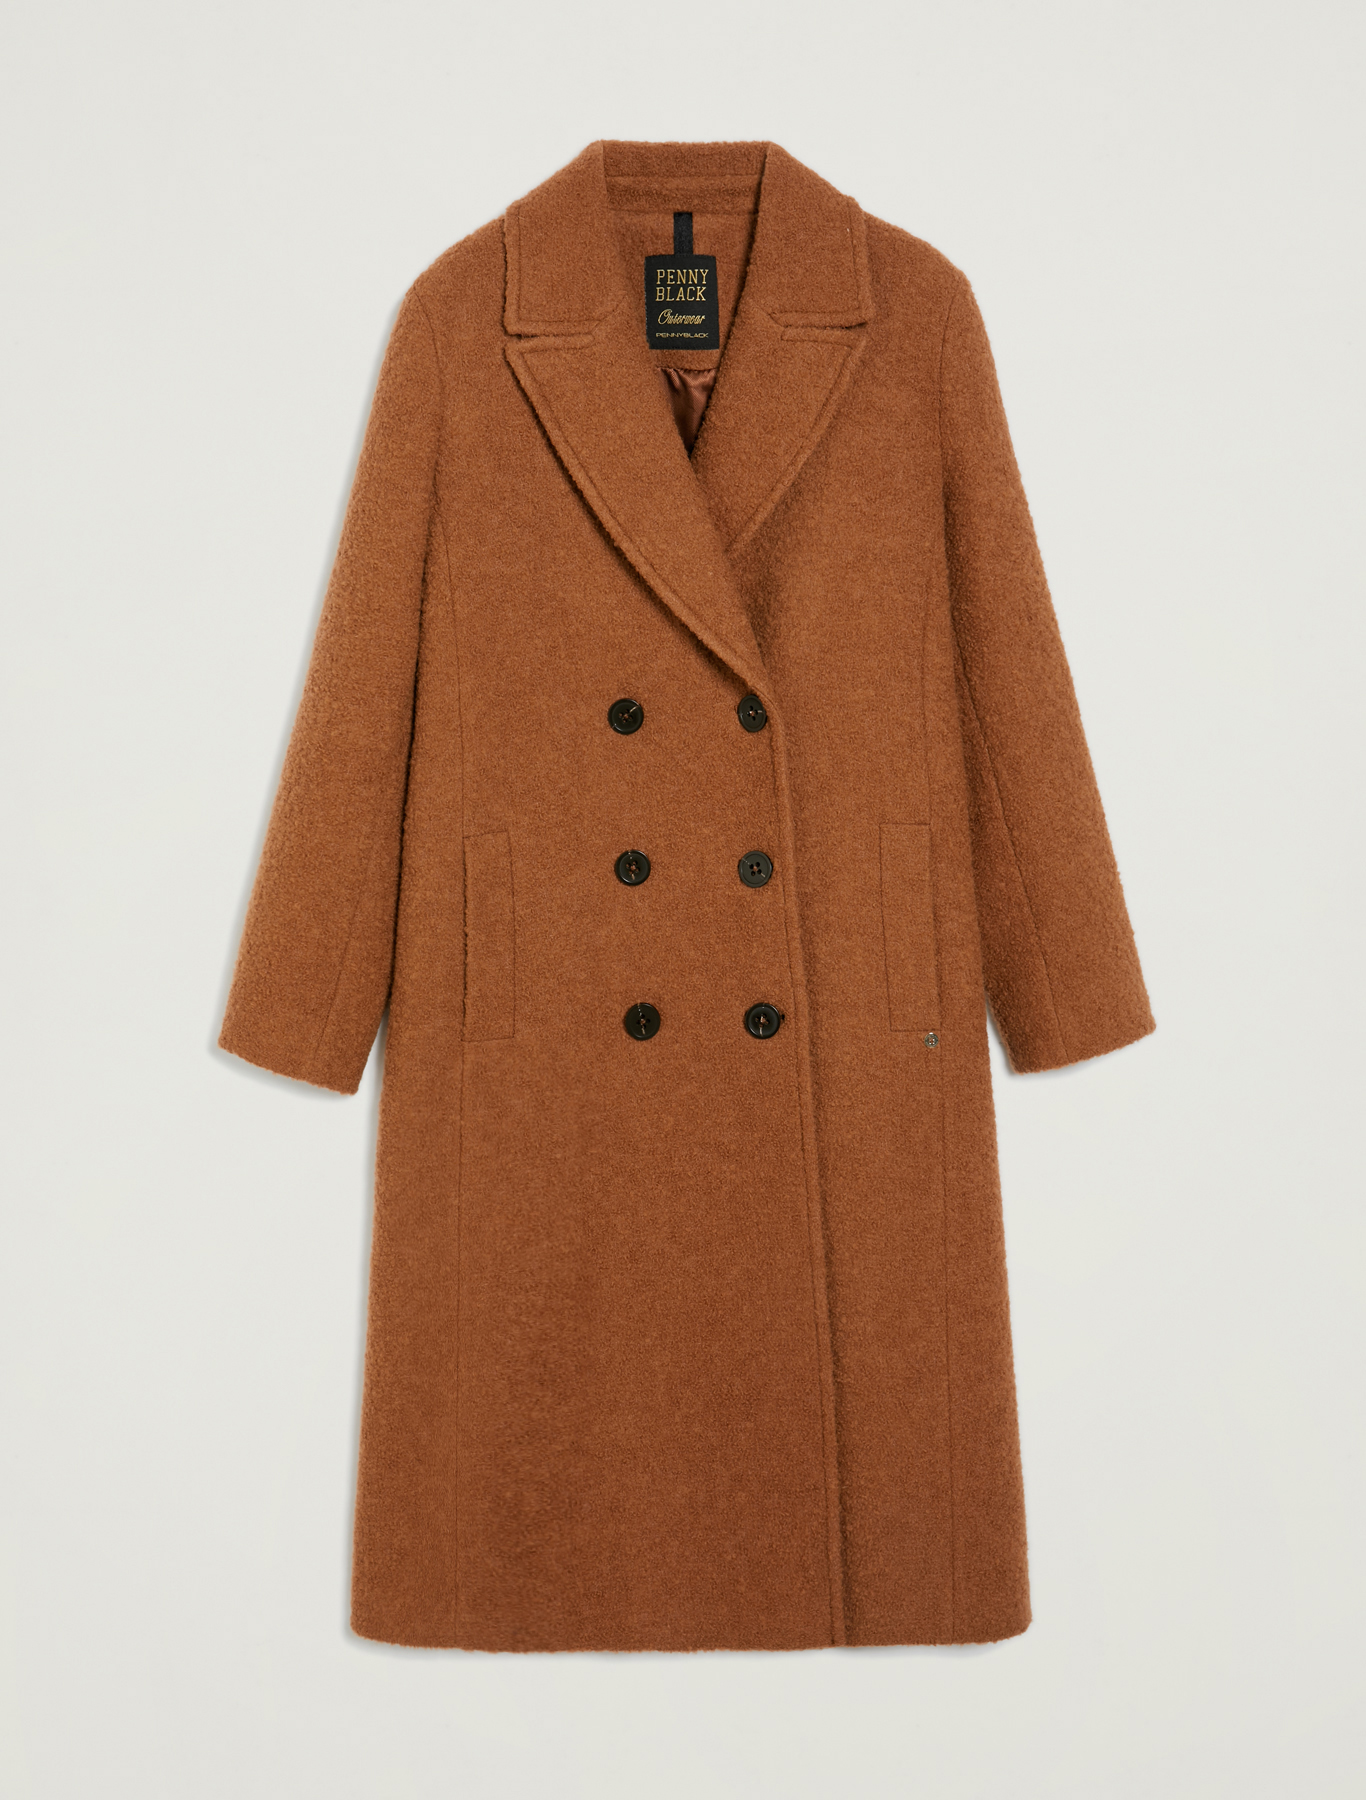 Double-breasted bouclé coat - brown - pennyblack